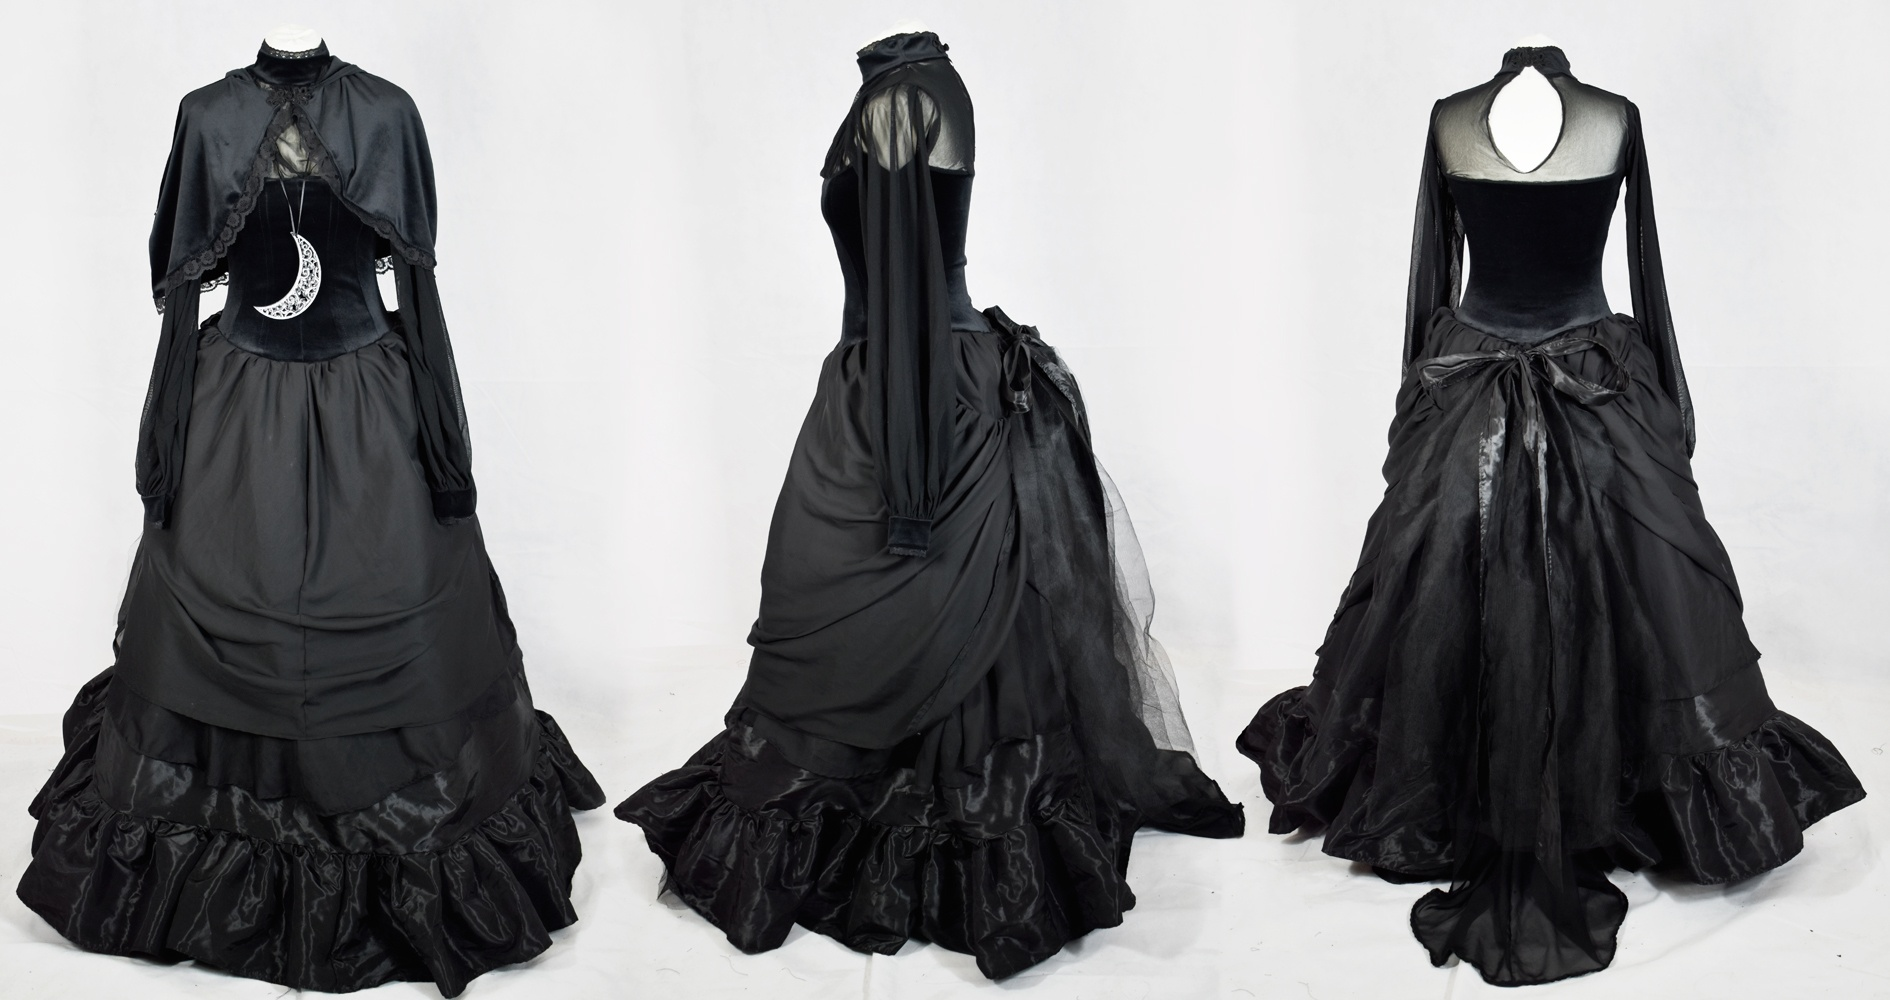 The epic Bavmorda Bustle Gown...